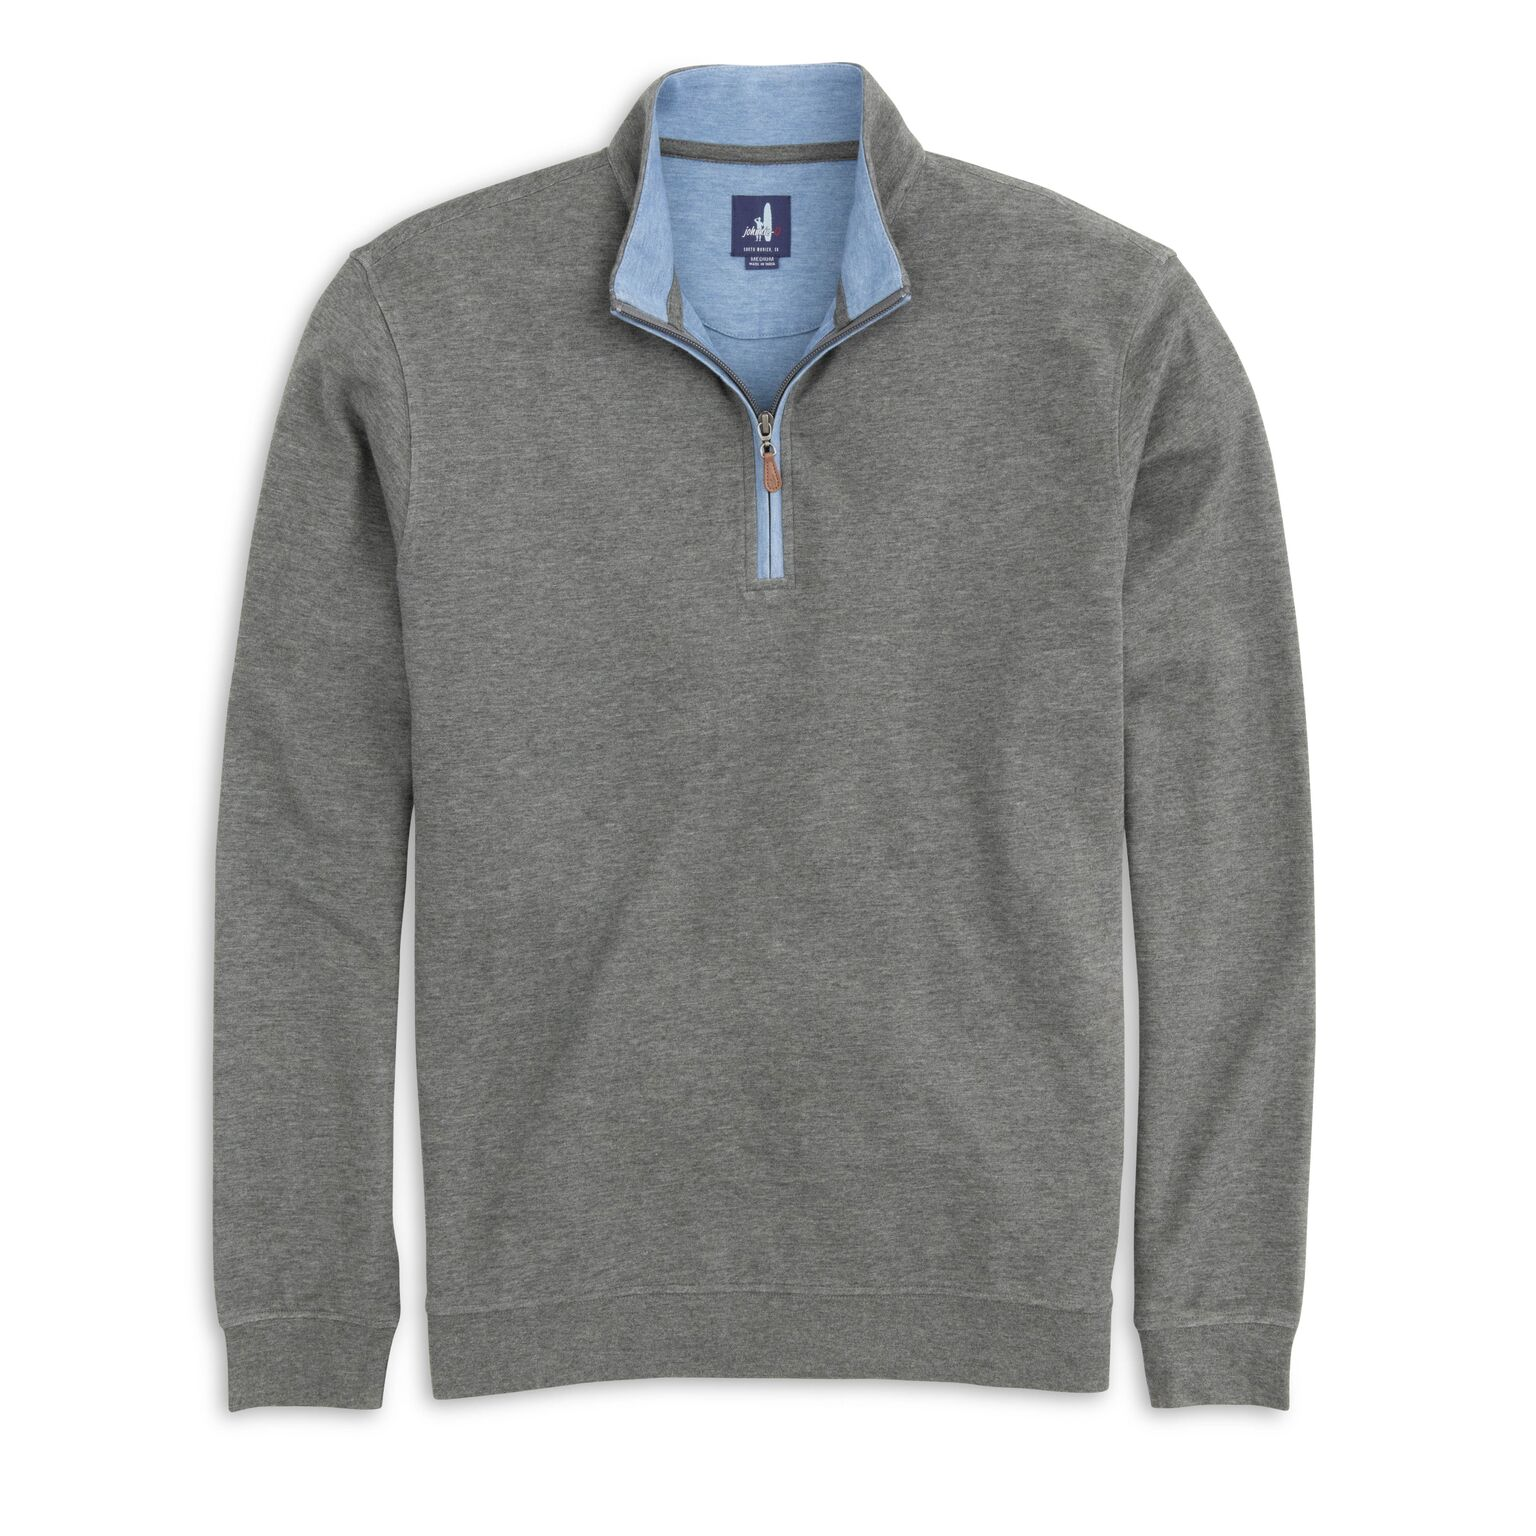 Sully 1/4 Zip Pullover (Charcoal)